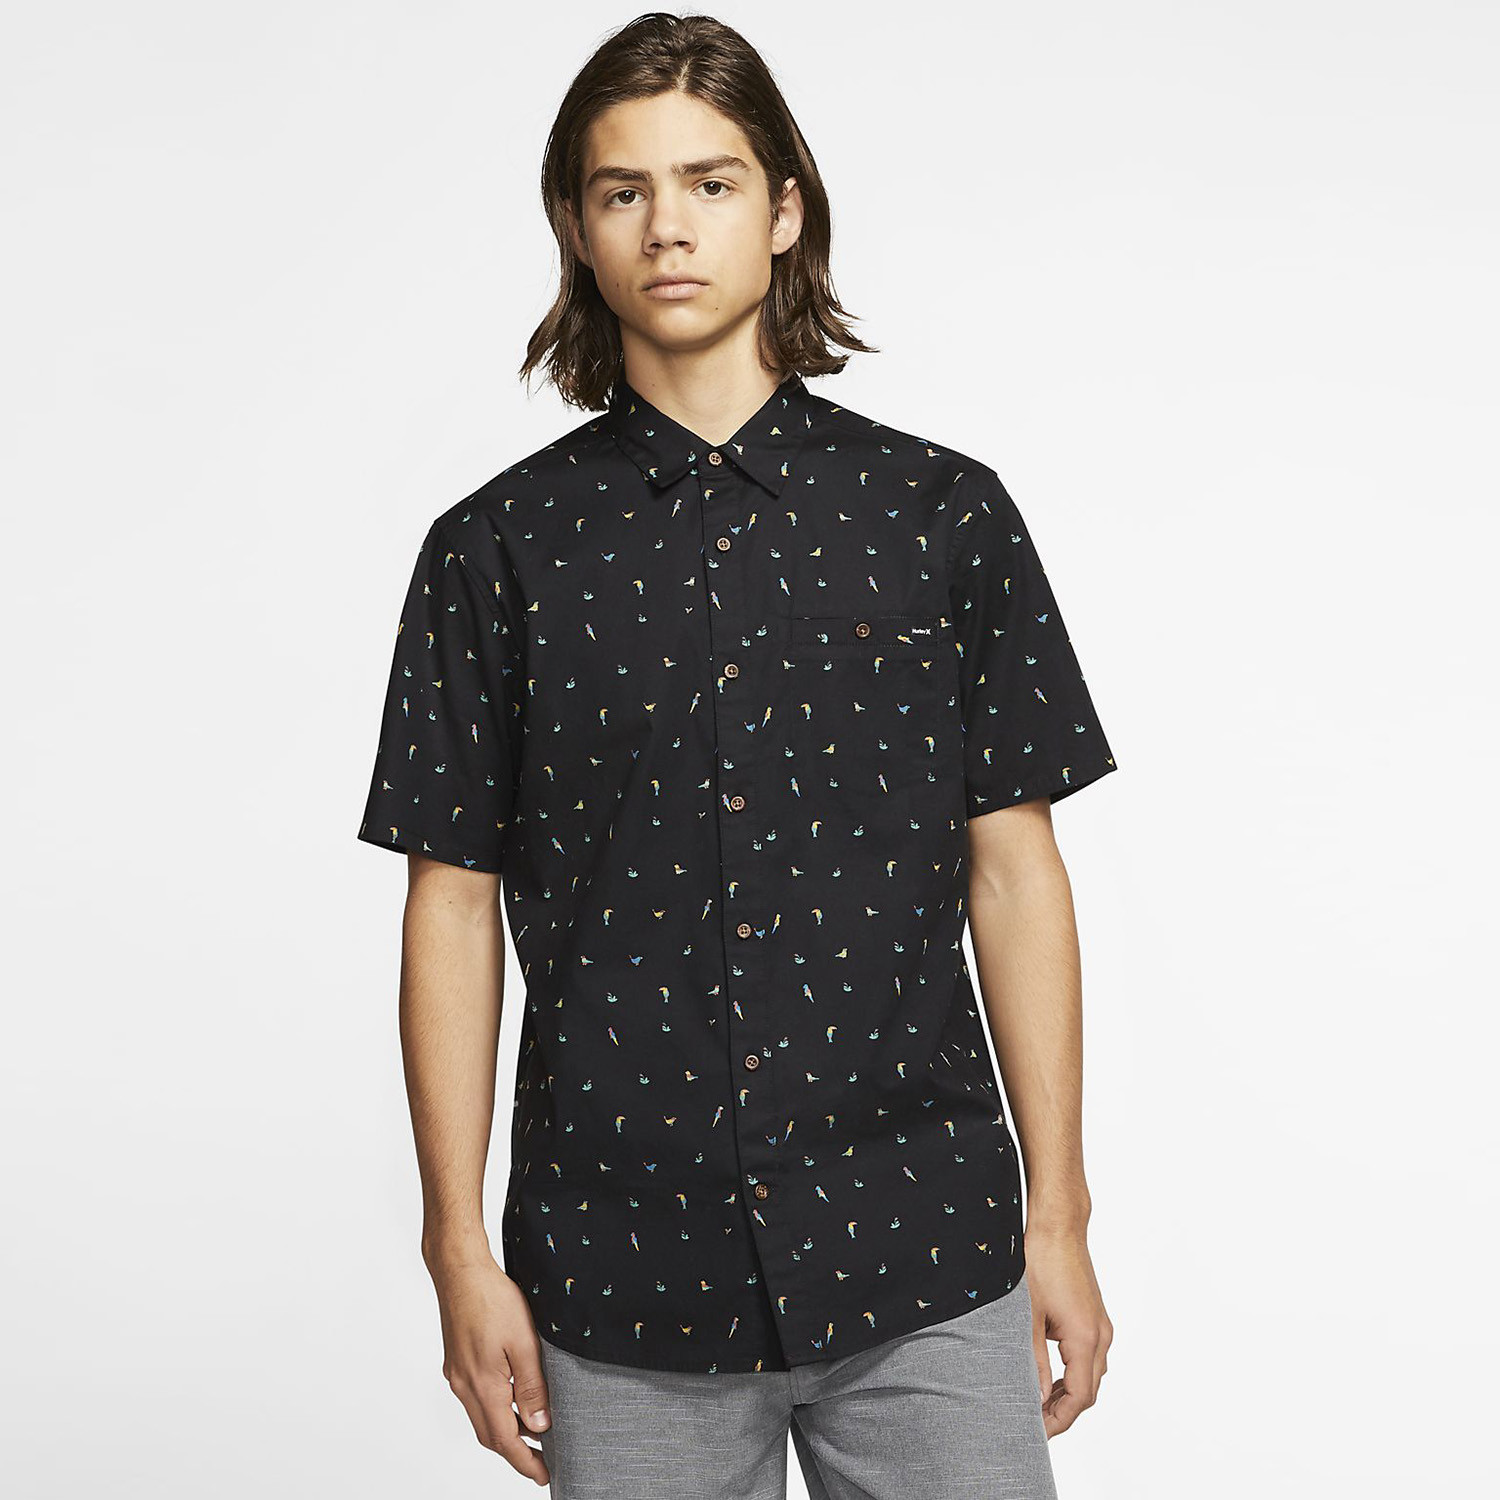 Hurley Birds Stretch Men's Short SLeeve Shirt (9000052293_1469)